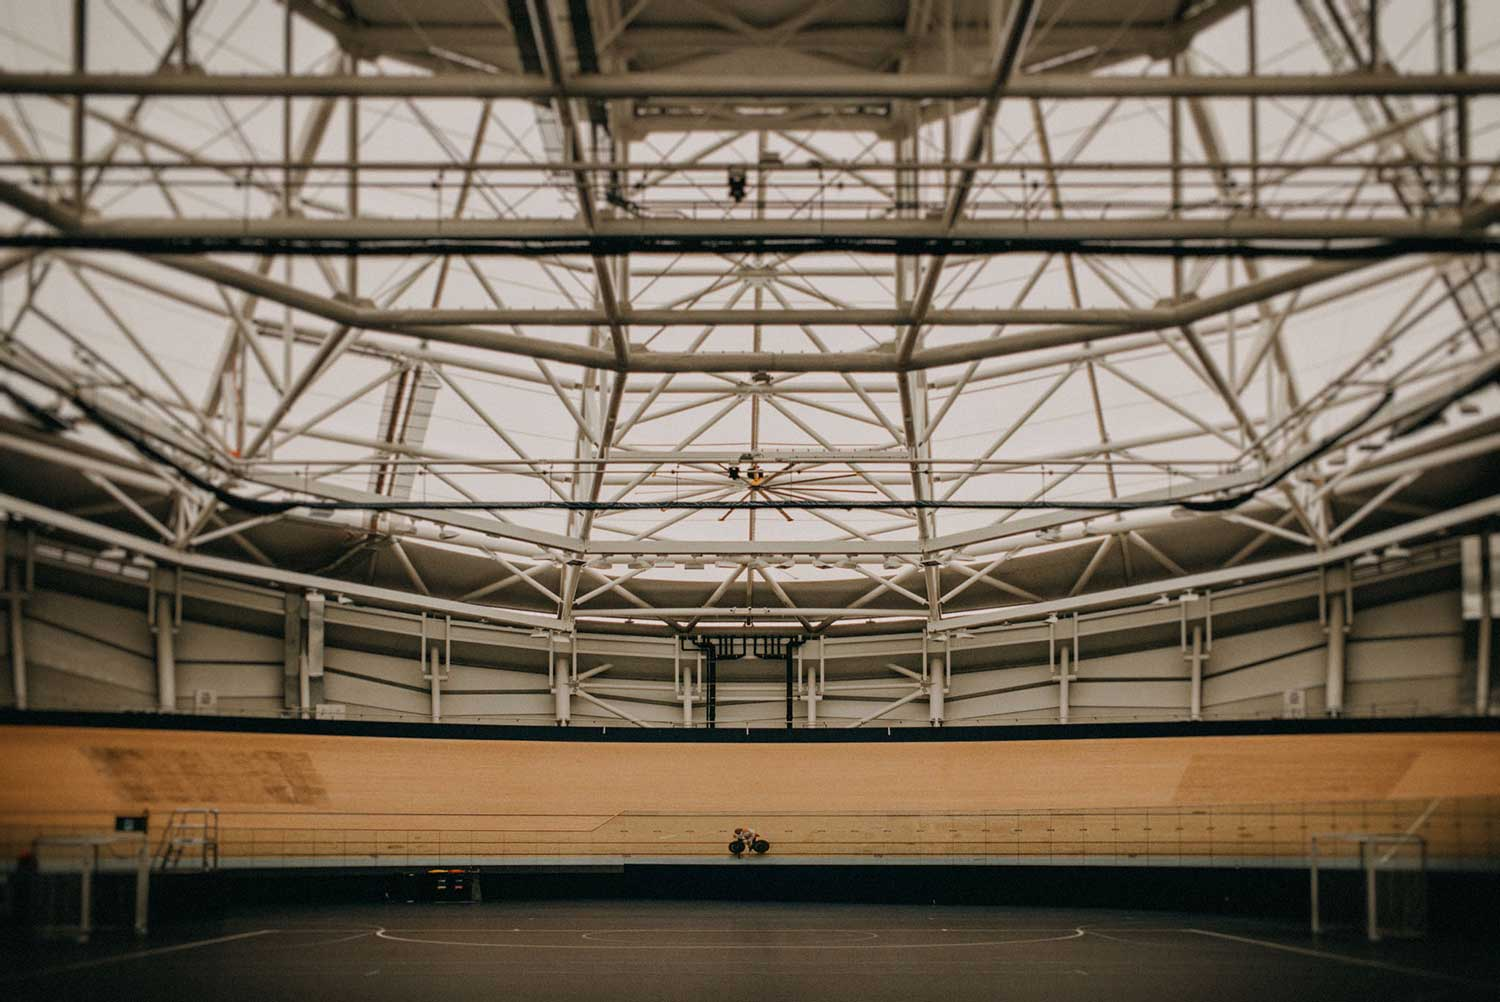 Japanese cyclist trains alone in the indoor velodrome